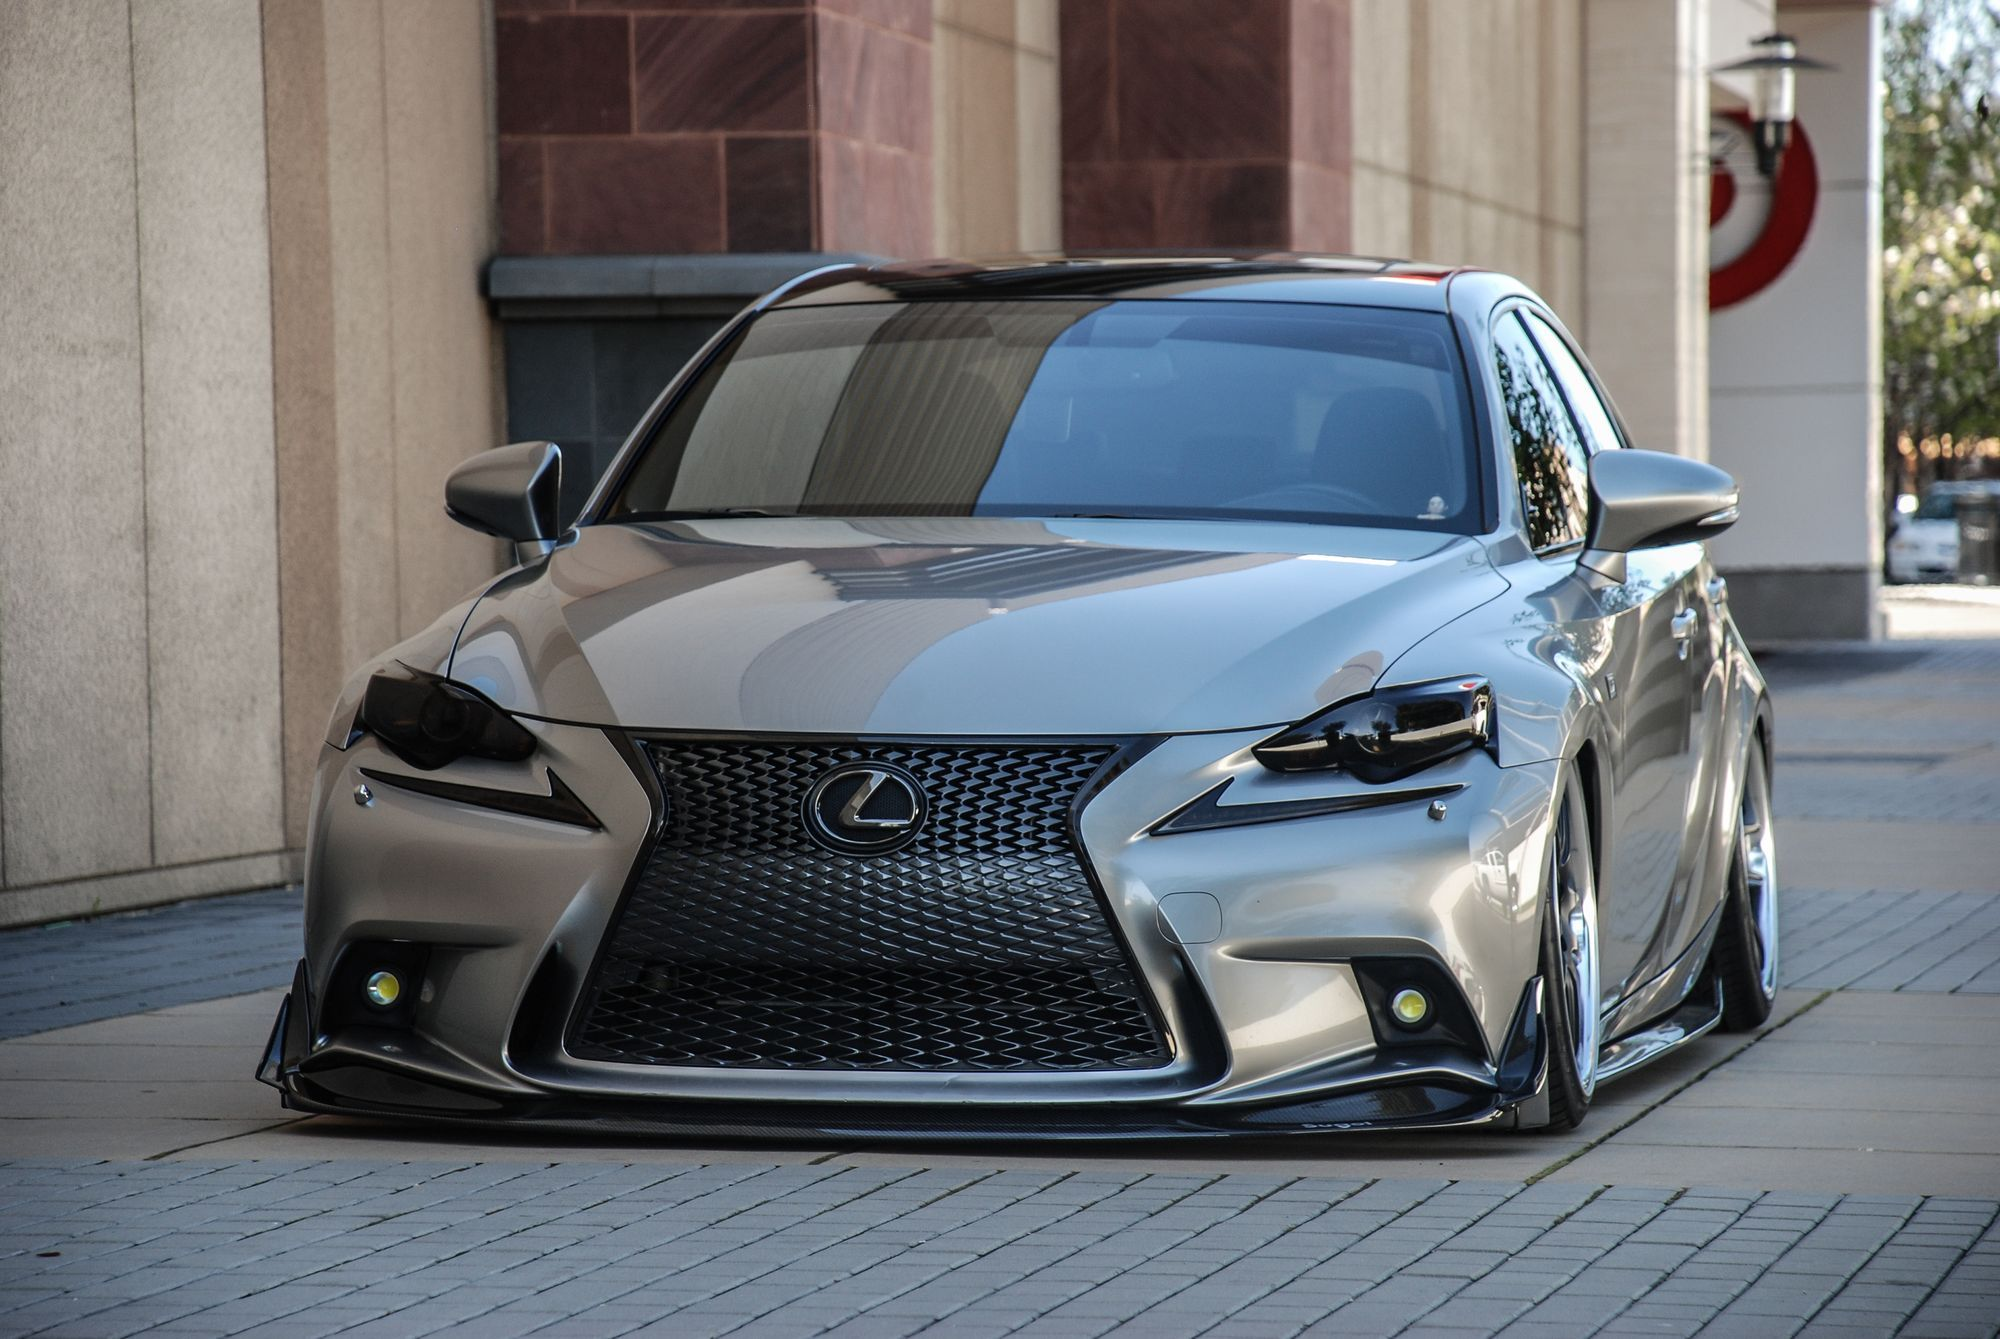 Build A Lexus >> Aquguam Is350 F Sport Atomic Silver Build Page 16